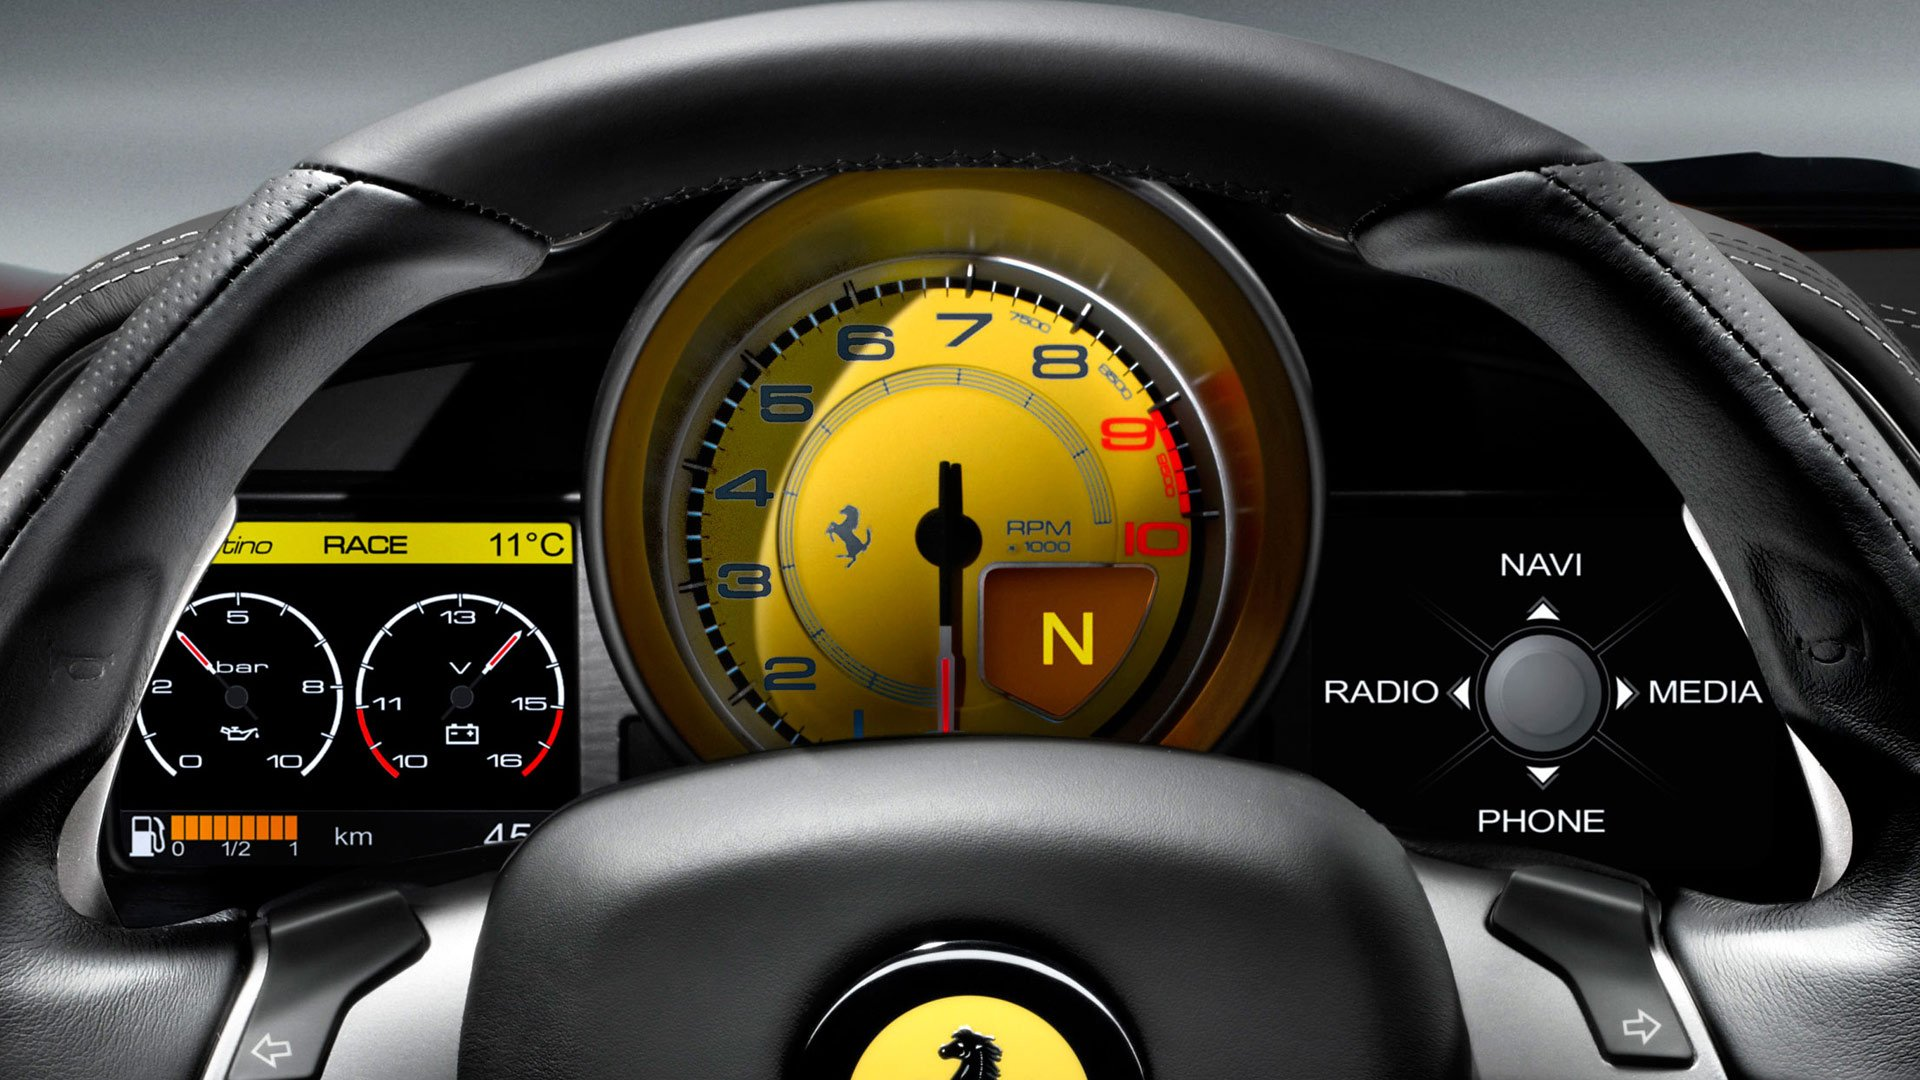 Ferrari Gauge Cluster For My Gt Ford Mustang Forum